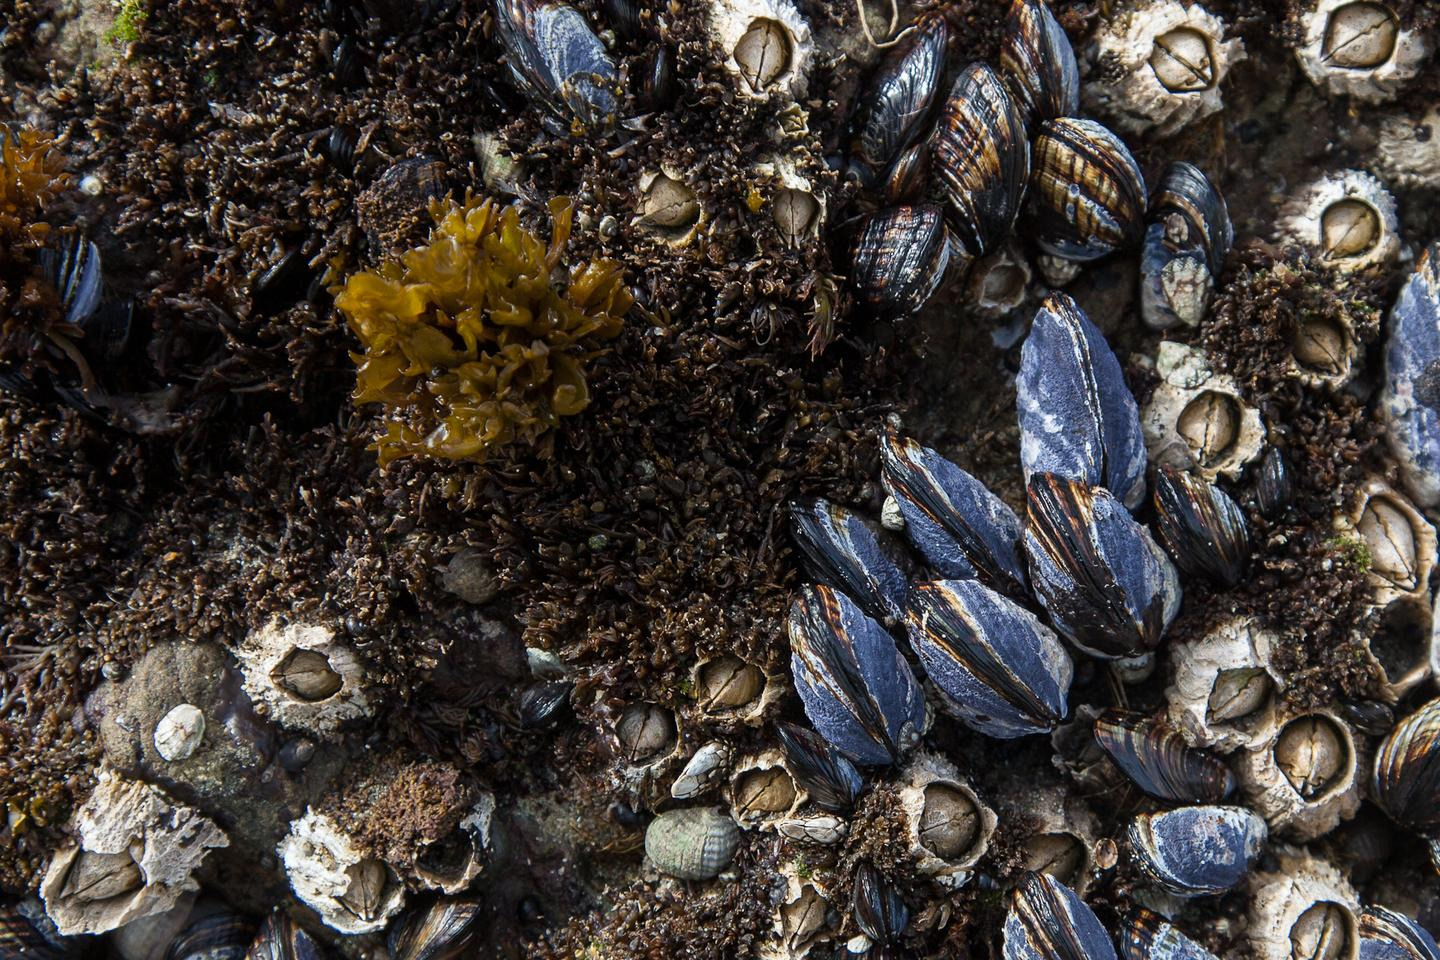 A study has found that mussels that aggregate into reef structures may be far more susceptible to the dangers of plastic pollution